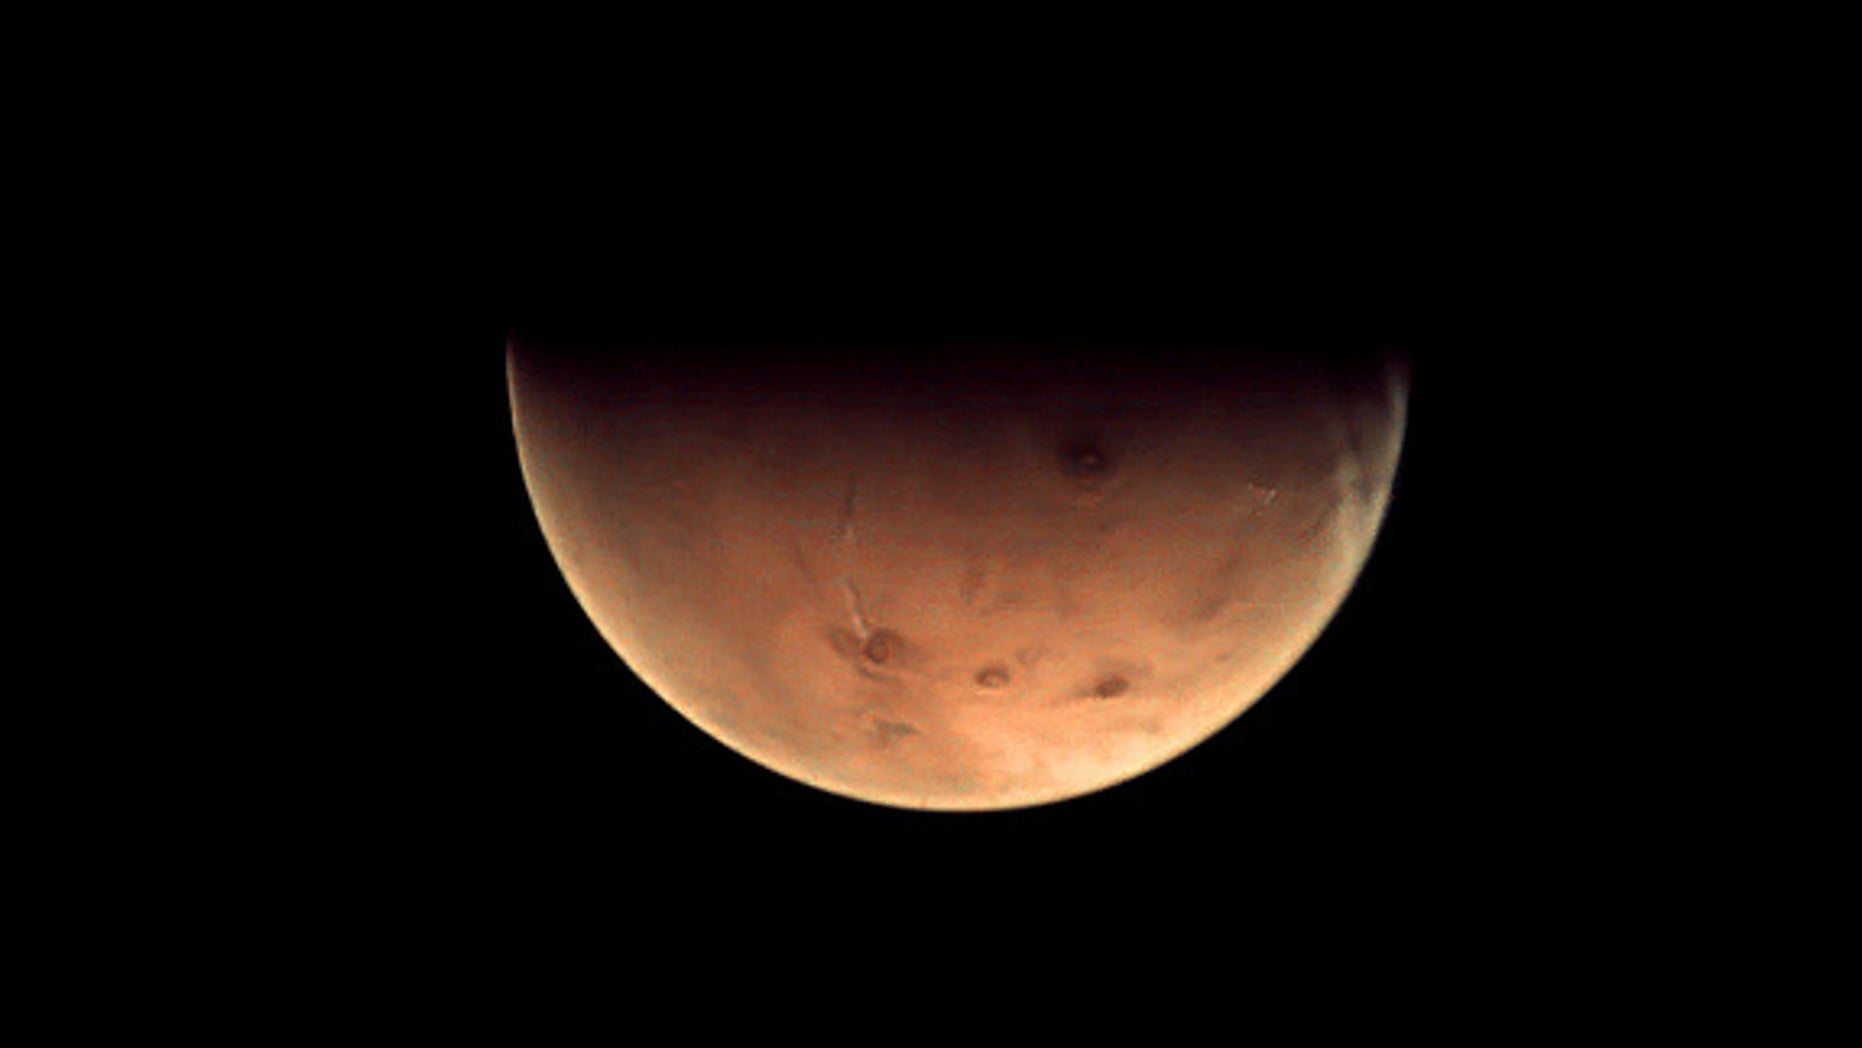 This Mars photo from ESA's Mars Express spacecraft was taken on Dec. 15, 2012, and beamed to Earth on Dec. 18. The spacecraft was 9.761 kilometers from Mars at the time.